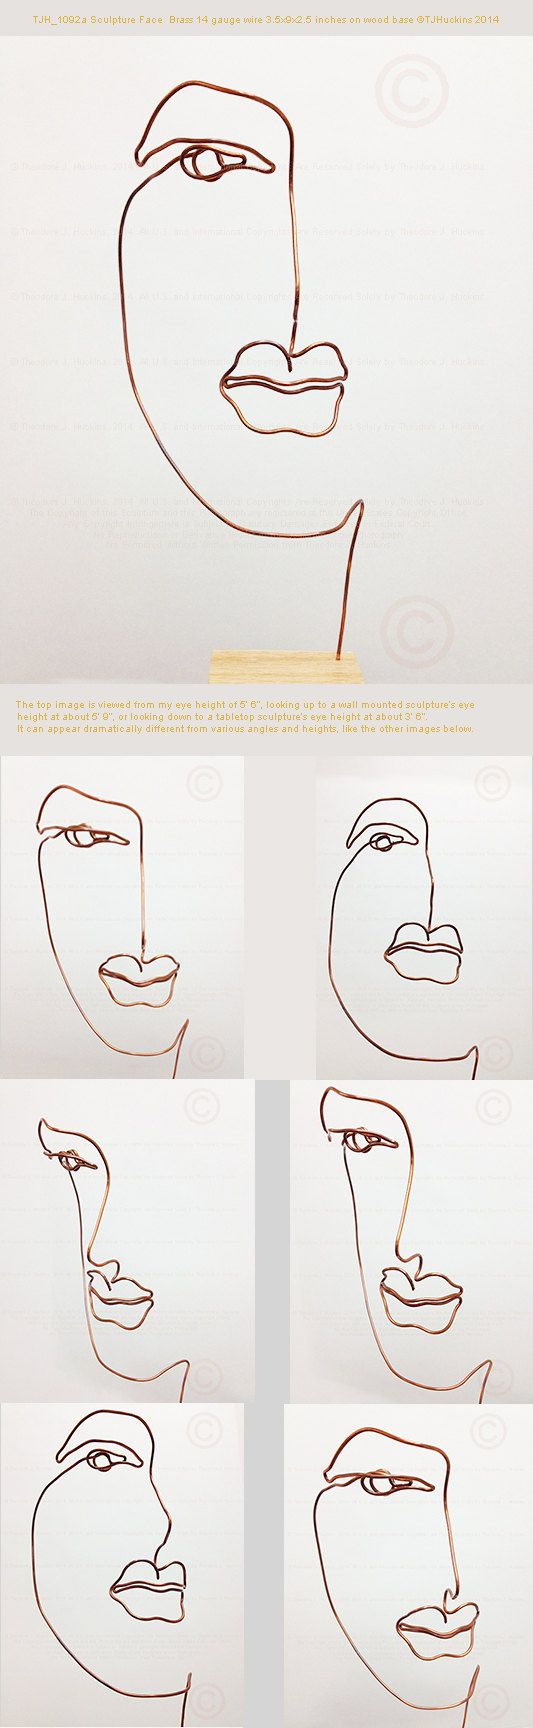 Wire line drawing metal sculpture of a face that is 4